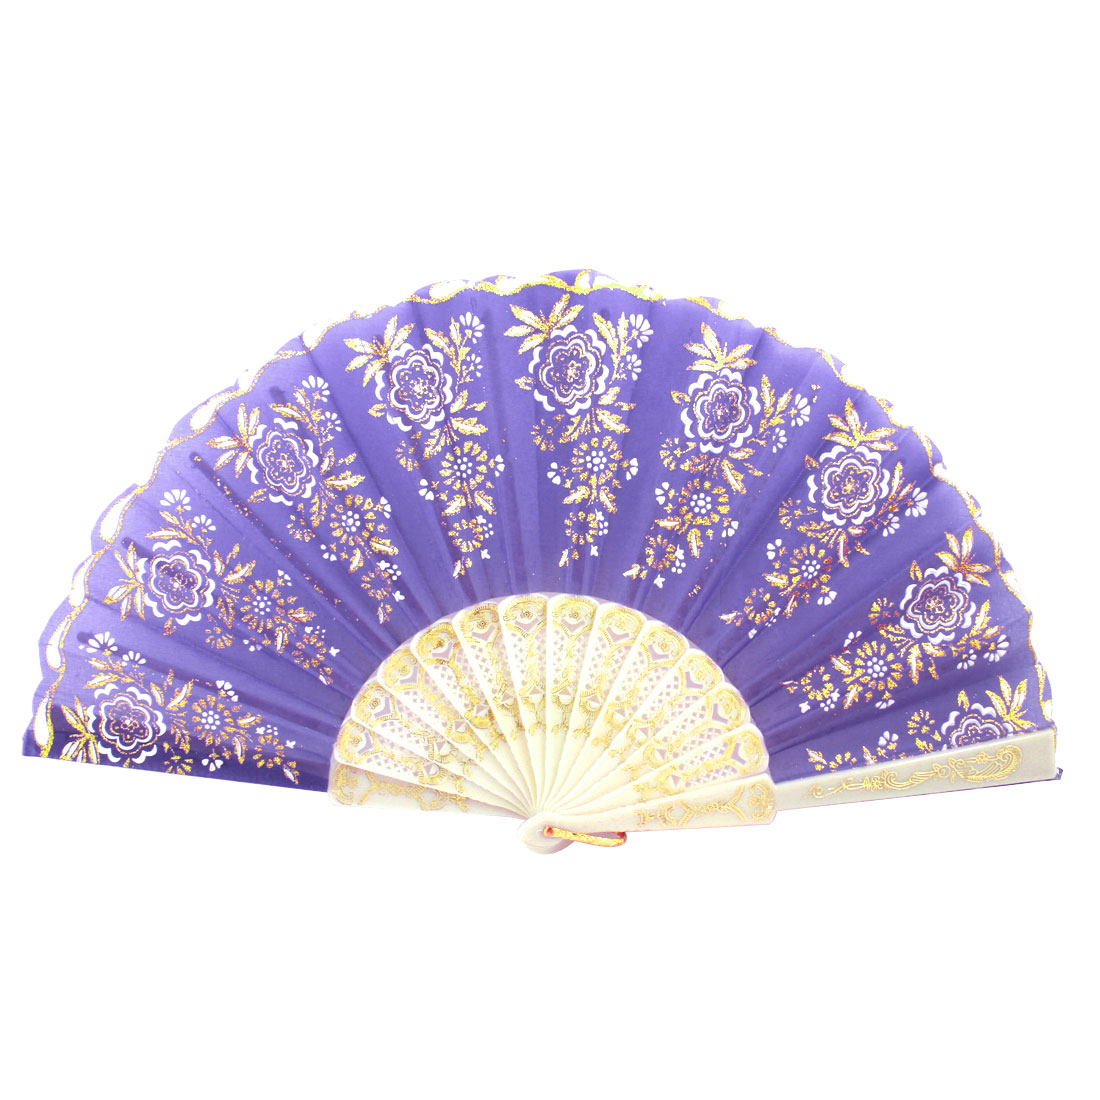 Plastic Frame Gold Tone Glittery Powder Decor Floral Pattern Foldable Hand Fan Purple White